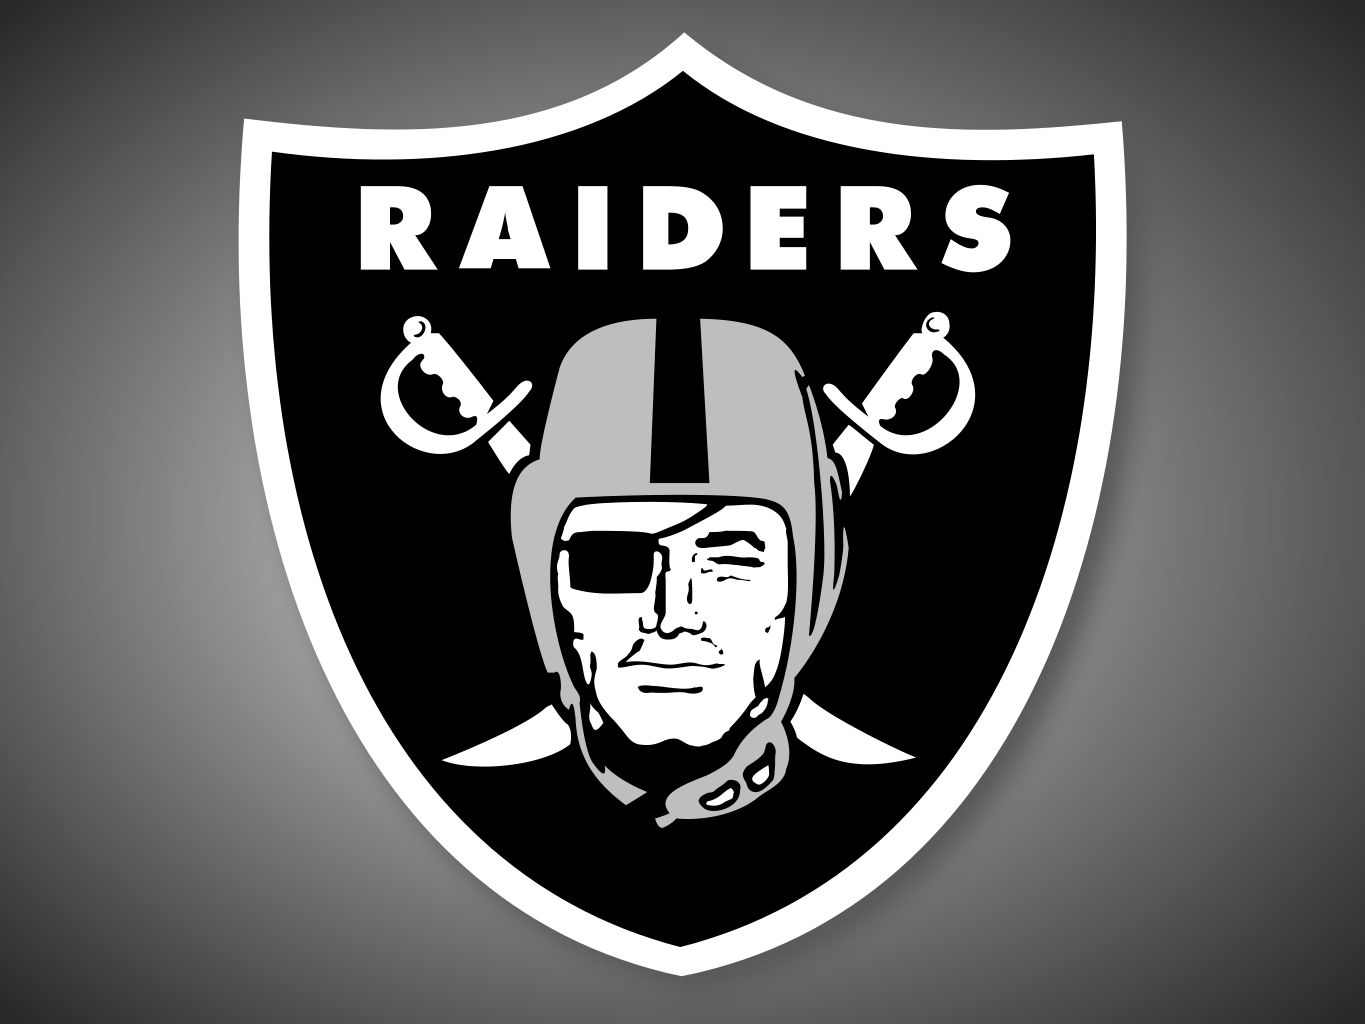 oakland raiders logo blank template - imgflip